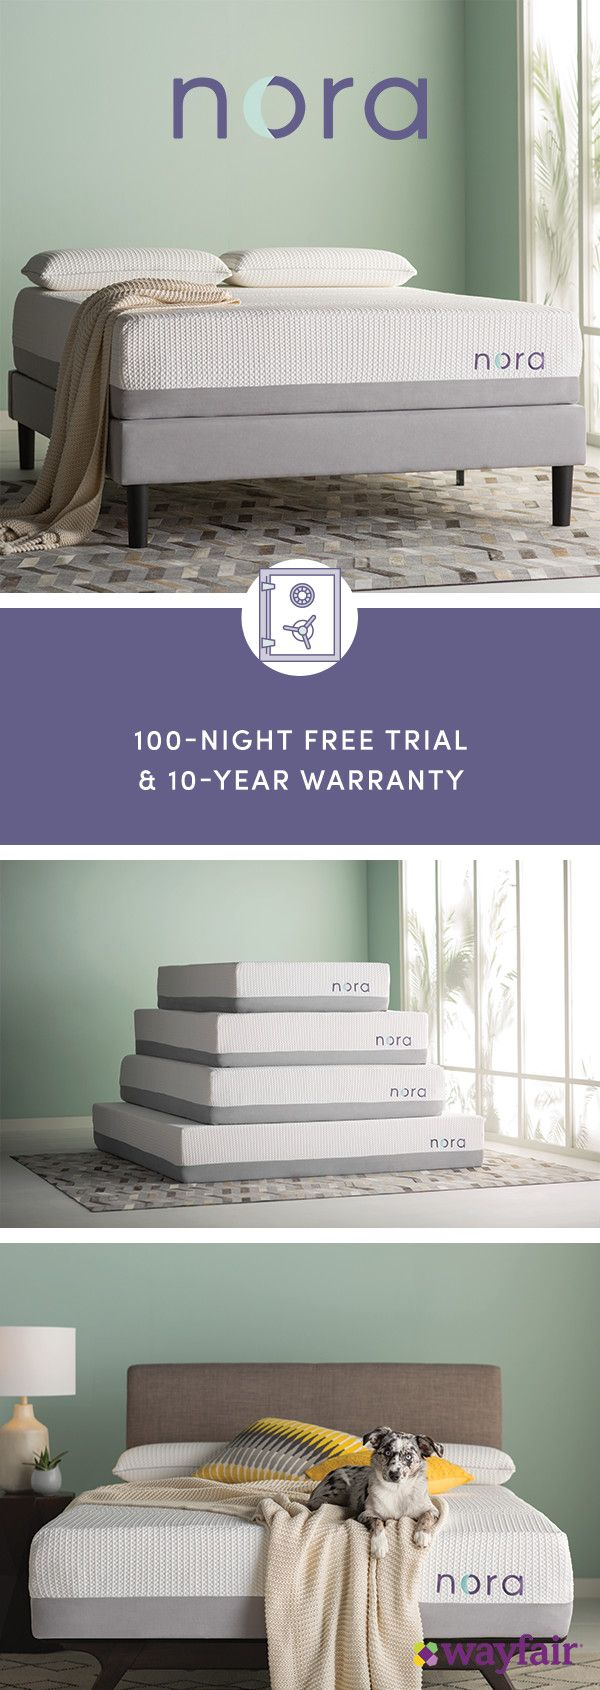 Sign up for access to everything home, including the new, Wayfair-exclusive Nora mattress! Researched and perfected down to the last detail, Nora offers premium, unparalleled comfort. It's easy to unbox and a cinch to set up. It's luxurious, cool, and carefully crafted to adapt to your body. The best part? It takes just two days to arrive on your doorstep – so you'll be ready to unwind in no time (and at no extra cost).